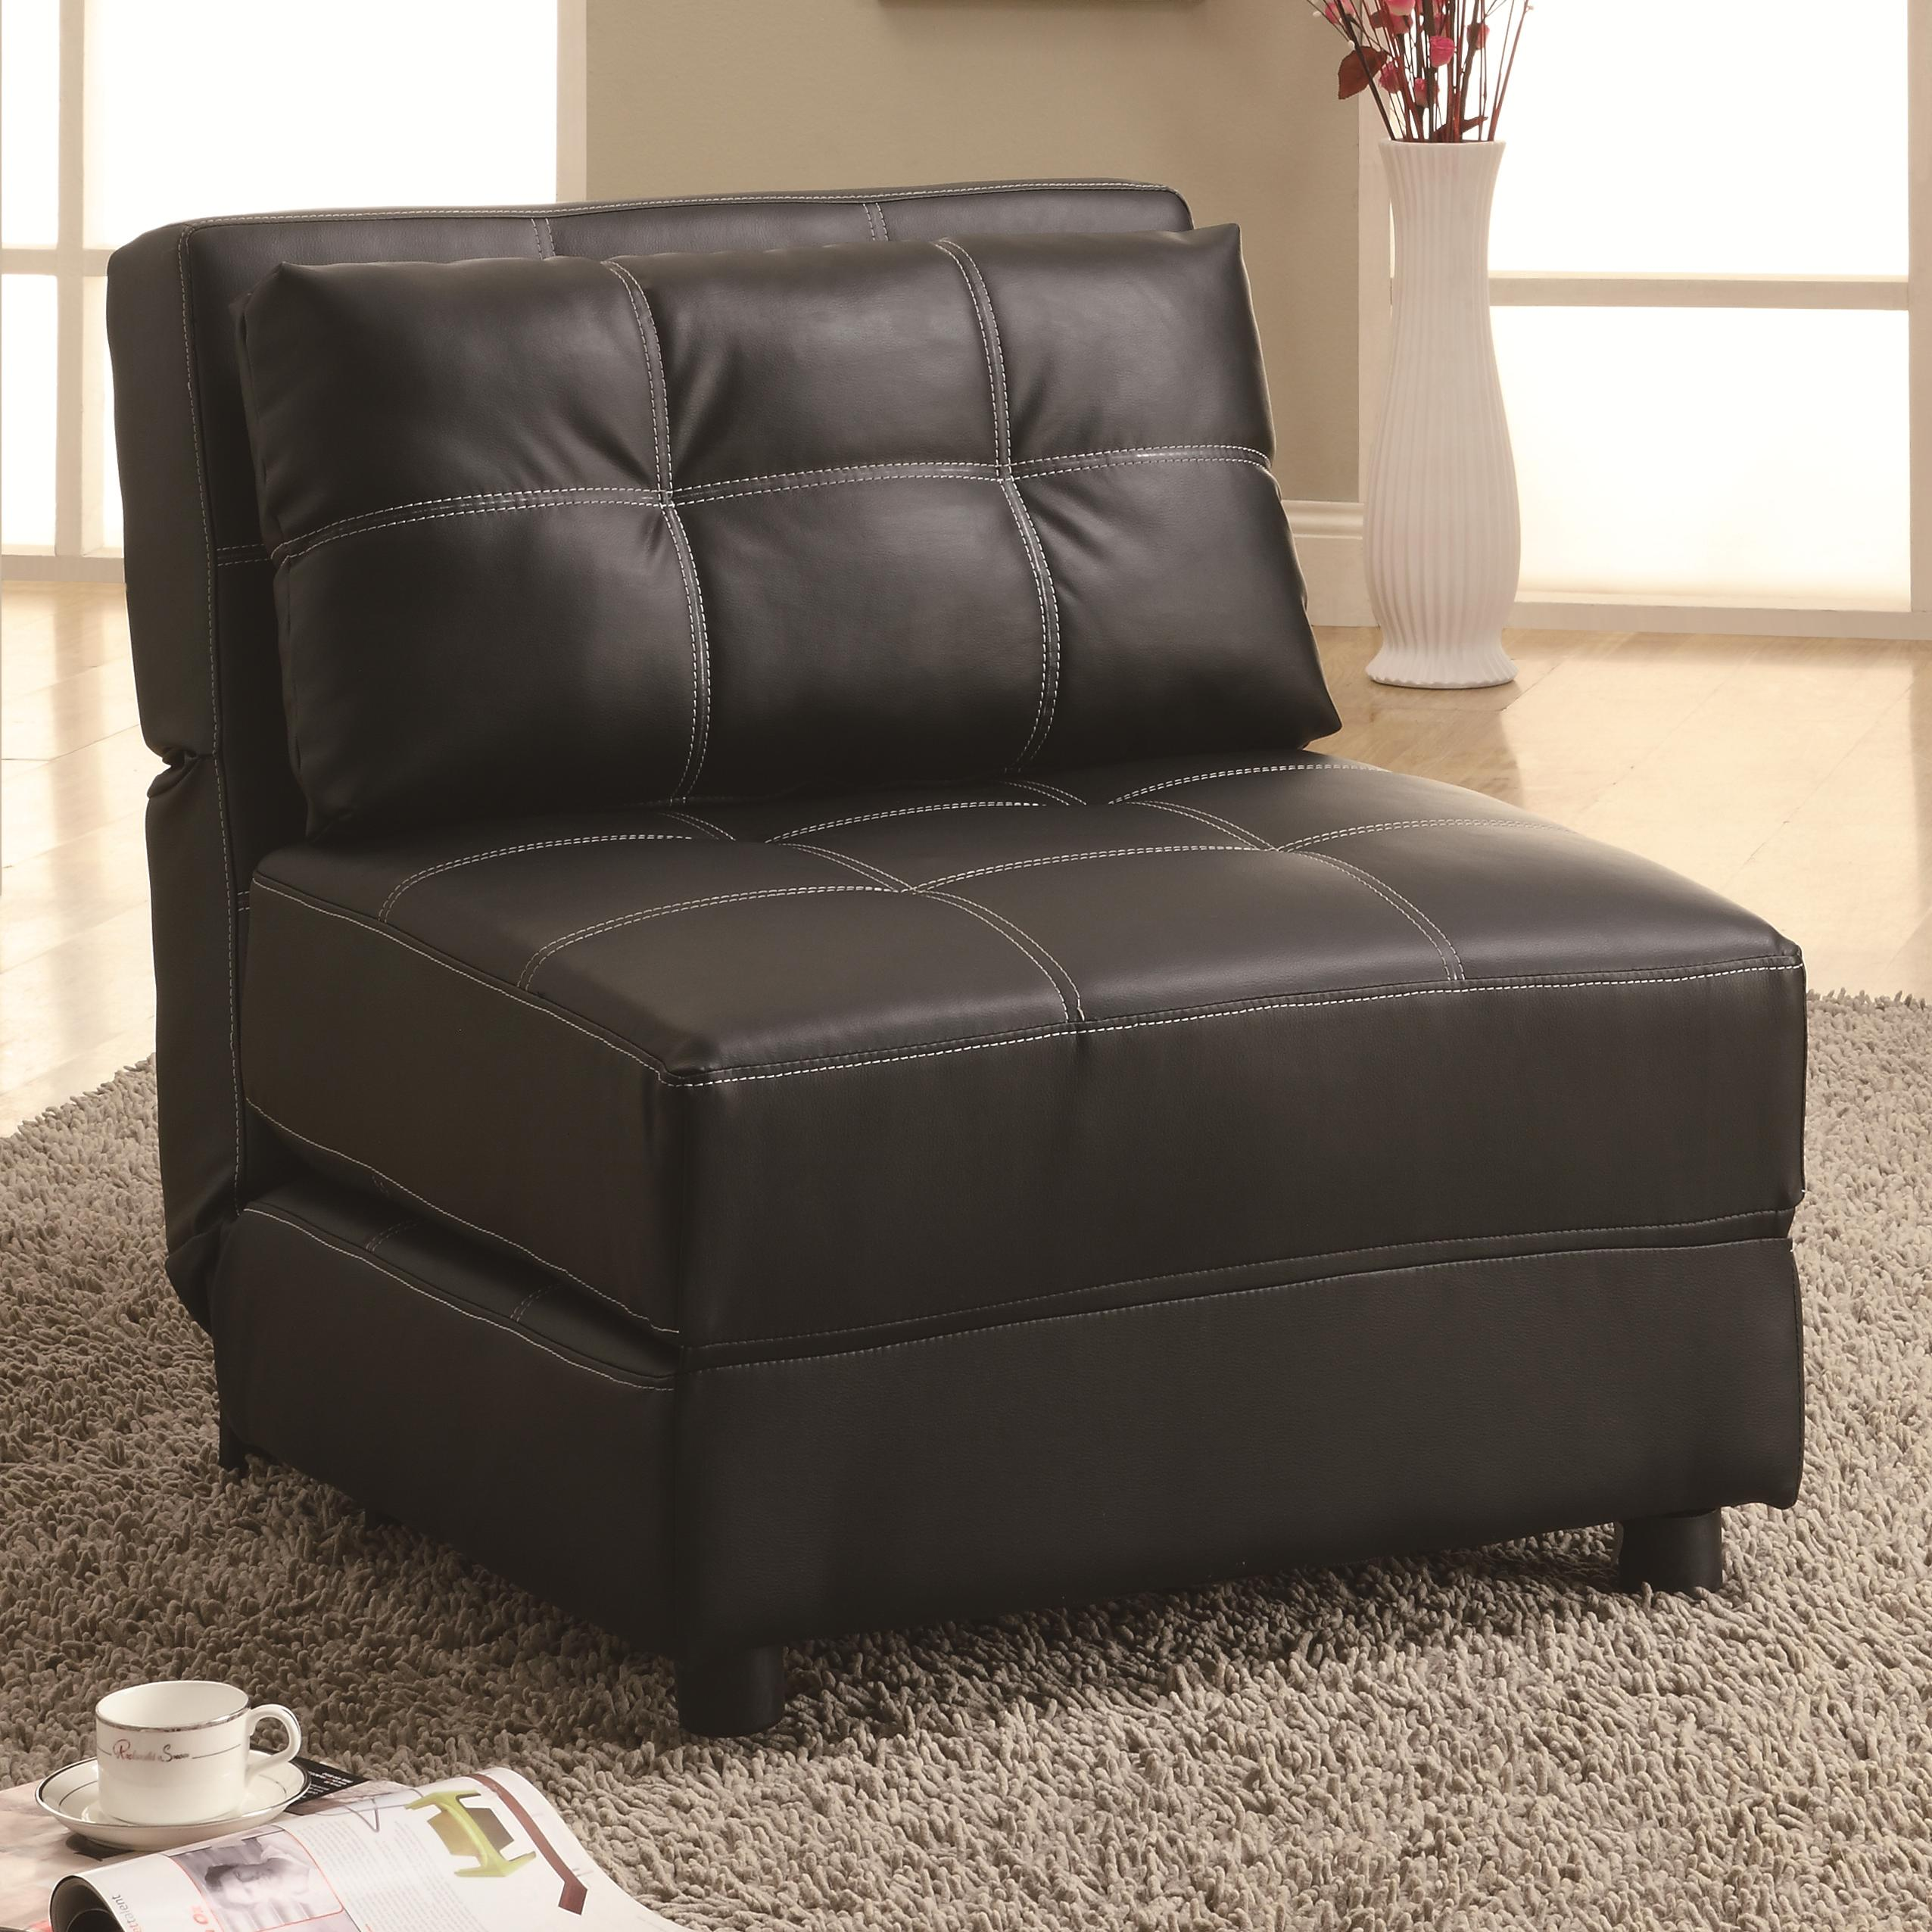 Accent Seating Lounge Chair/Sofa Bed by Coaster at Lapeer Furniture & Mattress Center